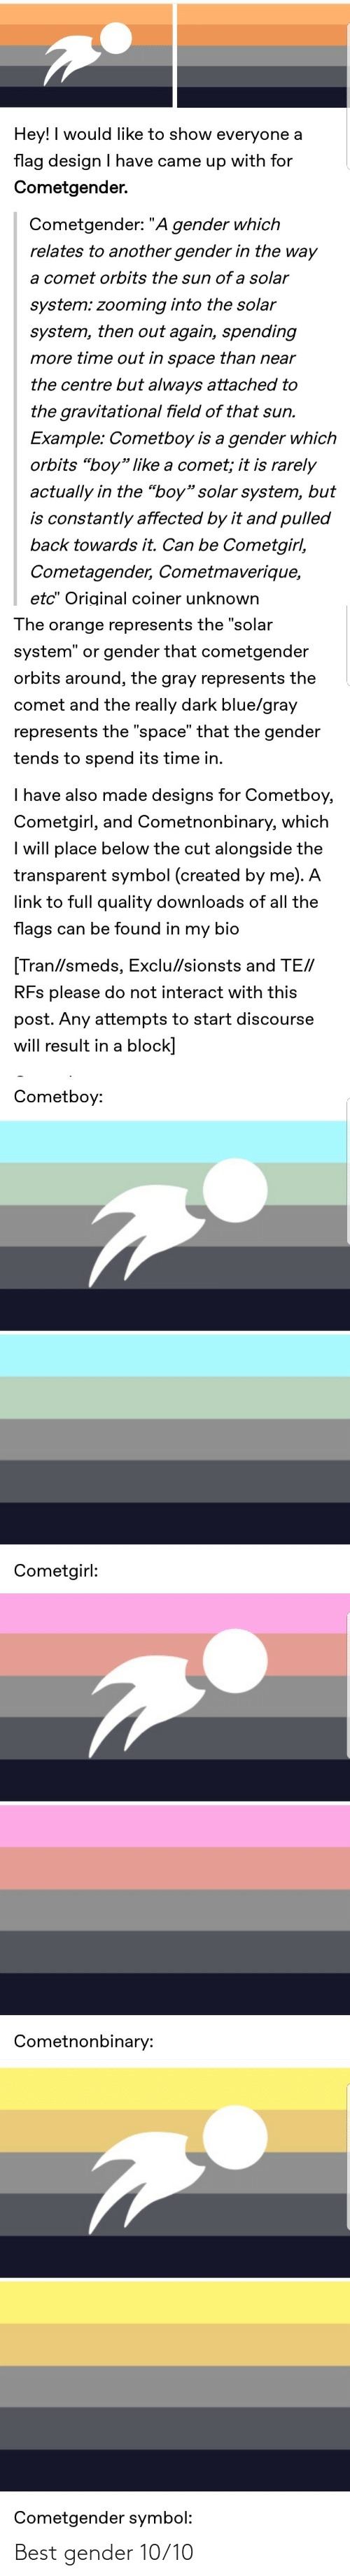 """Really Dark: Hey! I would like to show everyone a  flag design I have came up with for  Cometgender.  Cometgender: """"A gender which  relates to another gender in the way  a comet orbits the sun of a solar  system: zooming into the solar  system, then out again, spending  more time out in space than near  the centre but always attached to  the gravitational field of that sun.  Example: Cometboy is a gender which  orbits """"boy"""" like a comet; it is rarely  actually in the """"boy"""" solar system, but  is constantly affected by it and pulled  back towards it. Can be Cometgirl,  Cometagender, Cometmaverique,  etc"""" Original coiner unknown  The orange represents the """"solar  system"""" or gender that cometgender  orbits around, the gray represents the  comet and the really dark blue/gray  represents the """"space"""" that the gender  tends to spend its time in.  I have also made designs for Cometboy,  Cometgirl, and Cometnonbinary, which  I will place below the cut alongside the  transparent symbol (created by me). A  link to full quality downloads of all the  flags can be found in my bio  [Tran//smeds, Exclu//sionsts and TE//  RFs please do not interact with this  post. Any attempts to start discourse  will result in a block]  Cometboy:  Cometgirl:  Cometnonbinary:  Cometgender symbol: Best gender 10/10"""